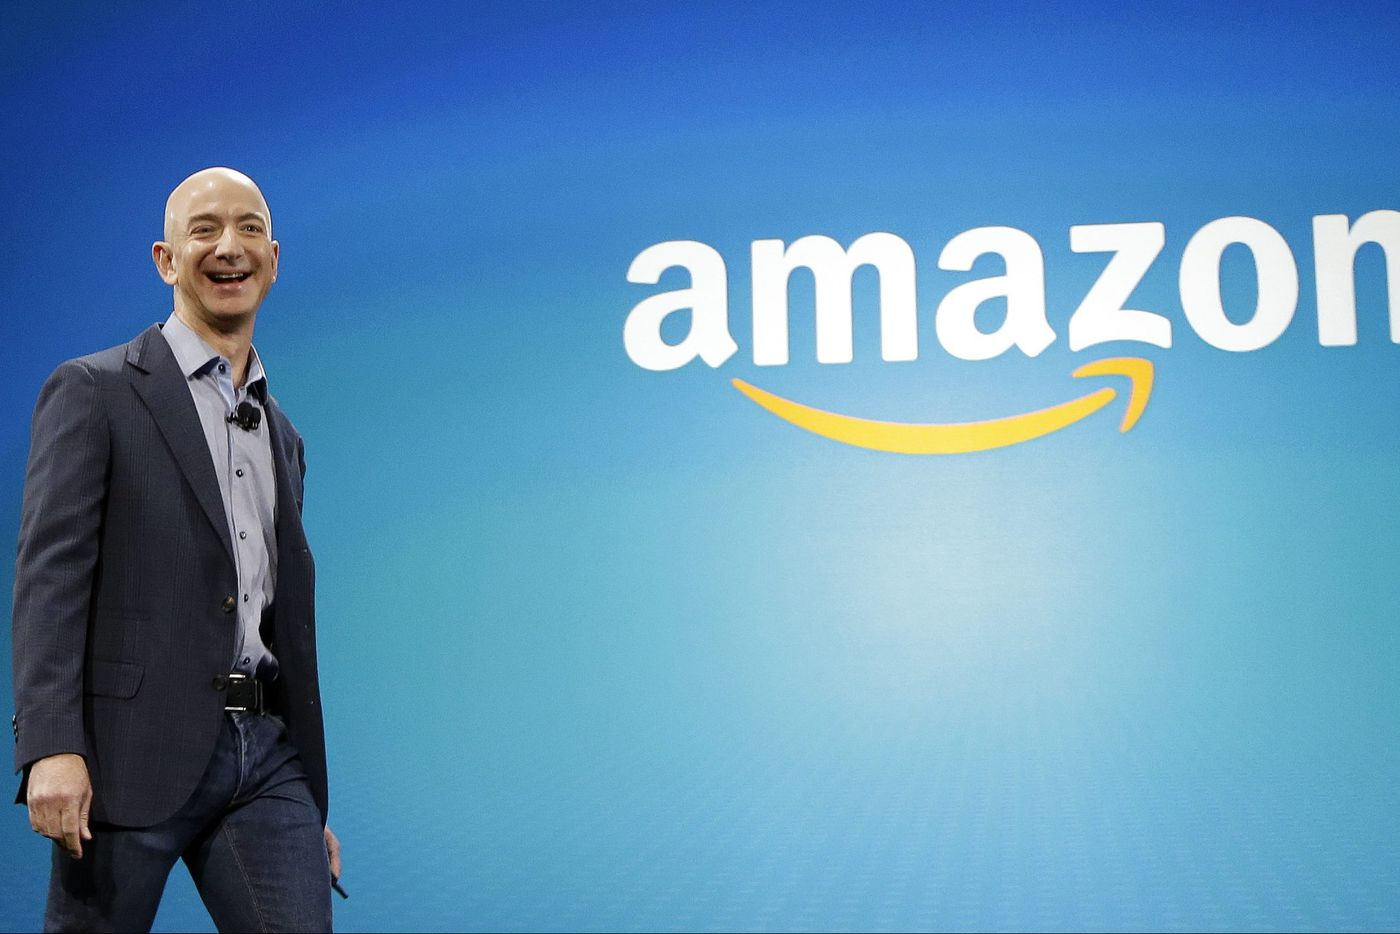 Amazon's Jeff Bezos commits $2 billion to help homeless, pre-schools